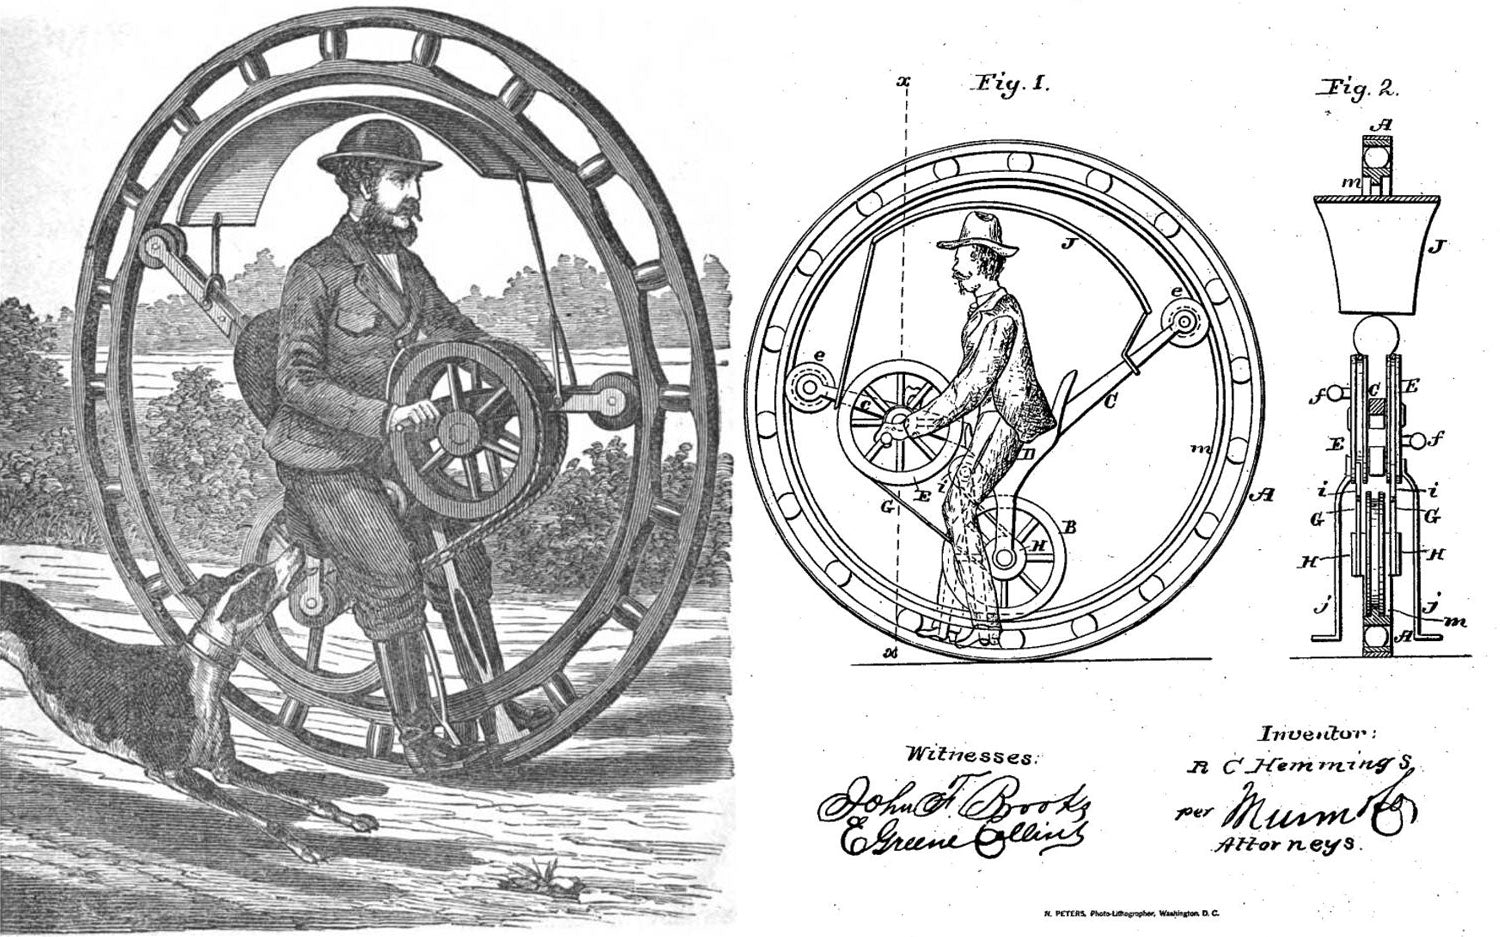 electric unicycle history - Picture of Hemming's Unicycle Flying Yankee Velocipede